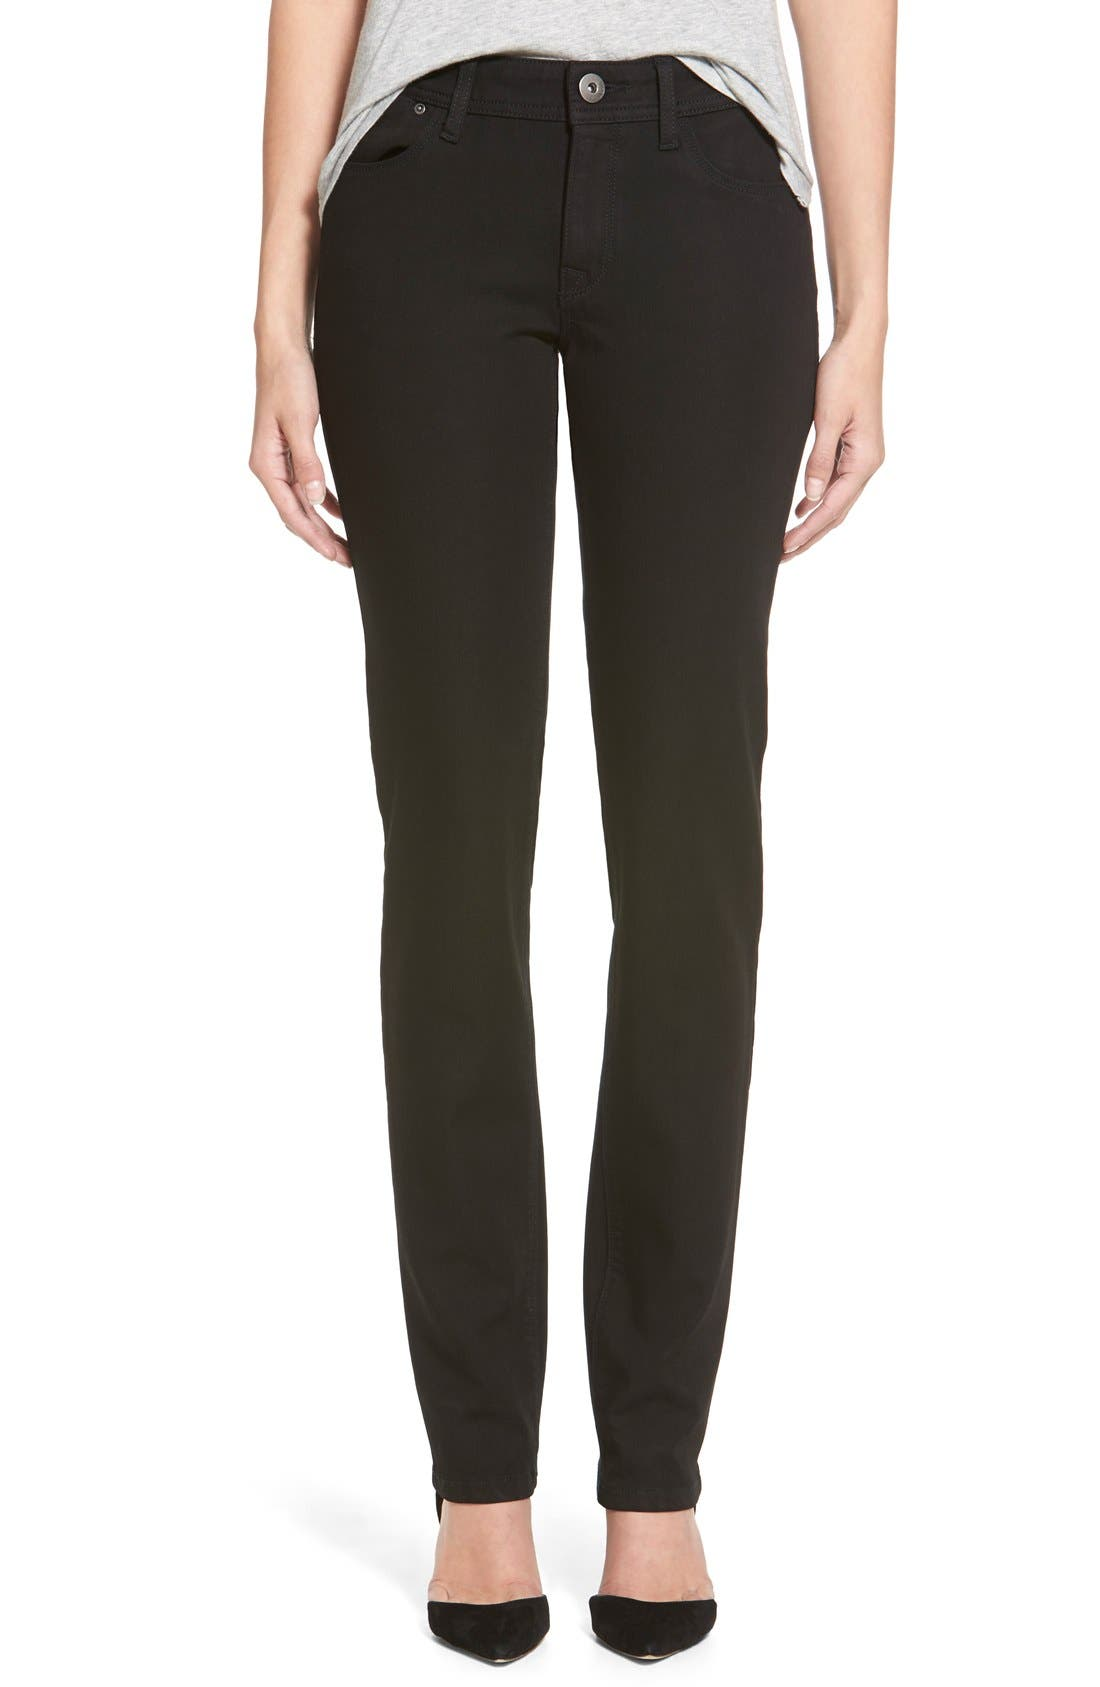 Alternate Image 1 Selected - DL1961 'Coco' Curvy Straight Leg Jeans (Riker)